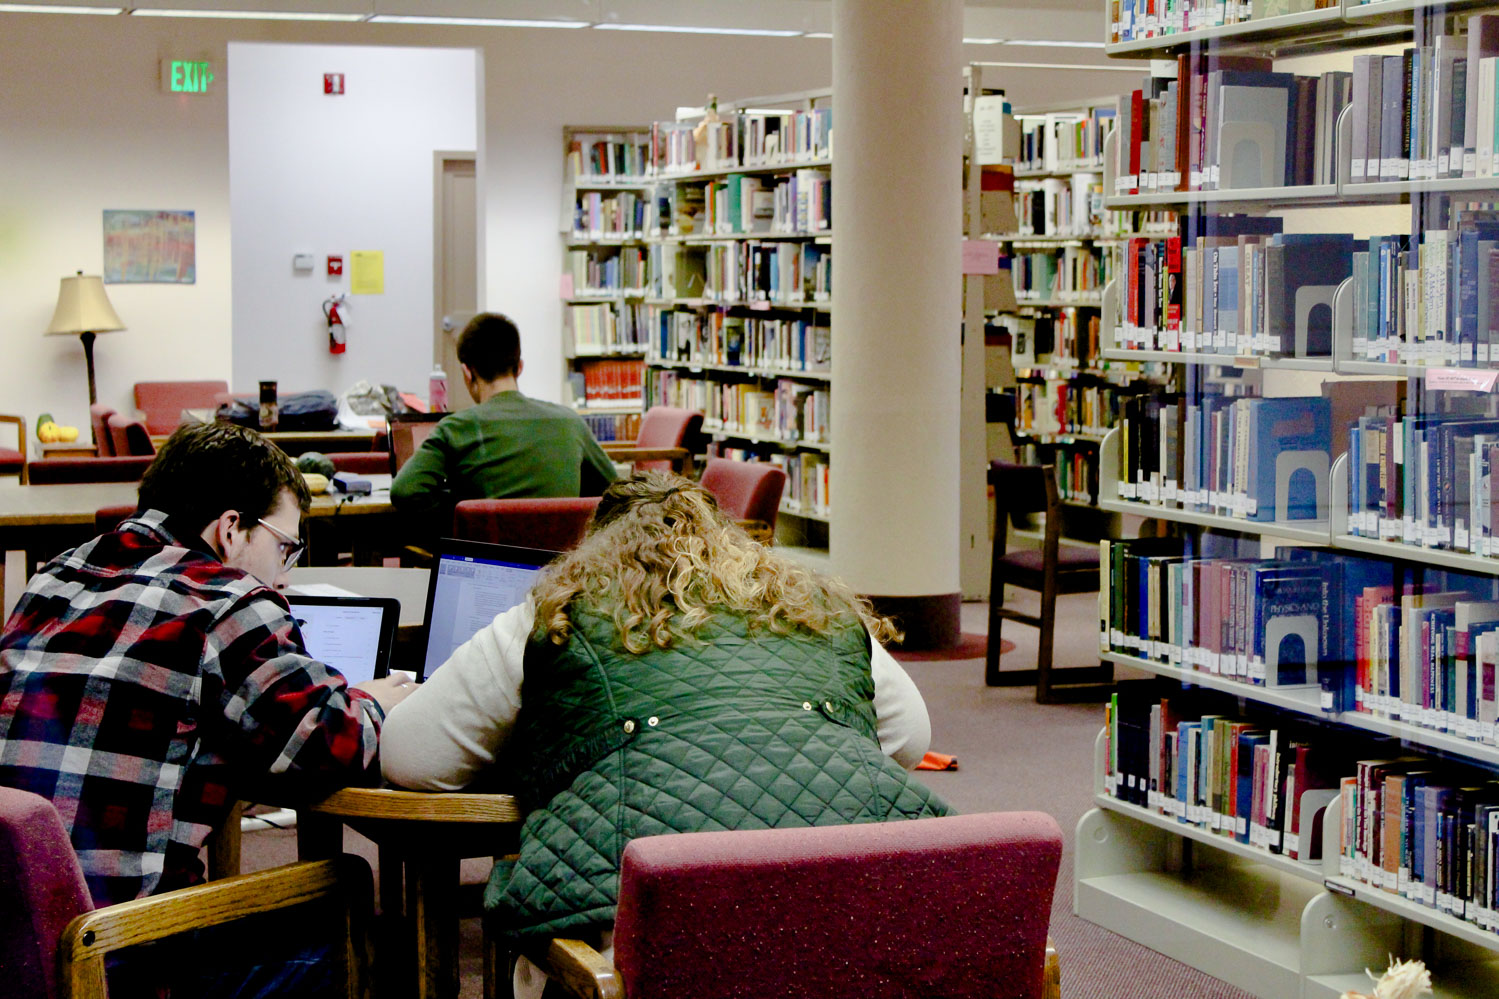 Christian college library